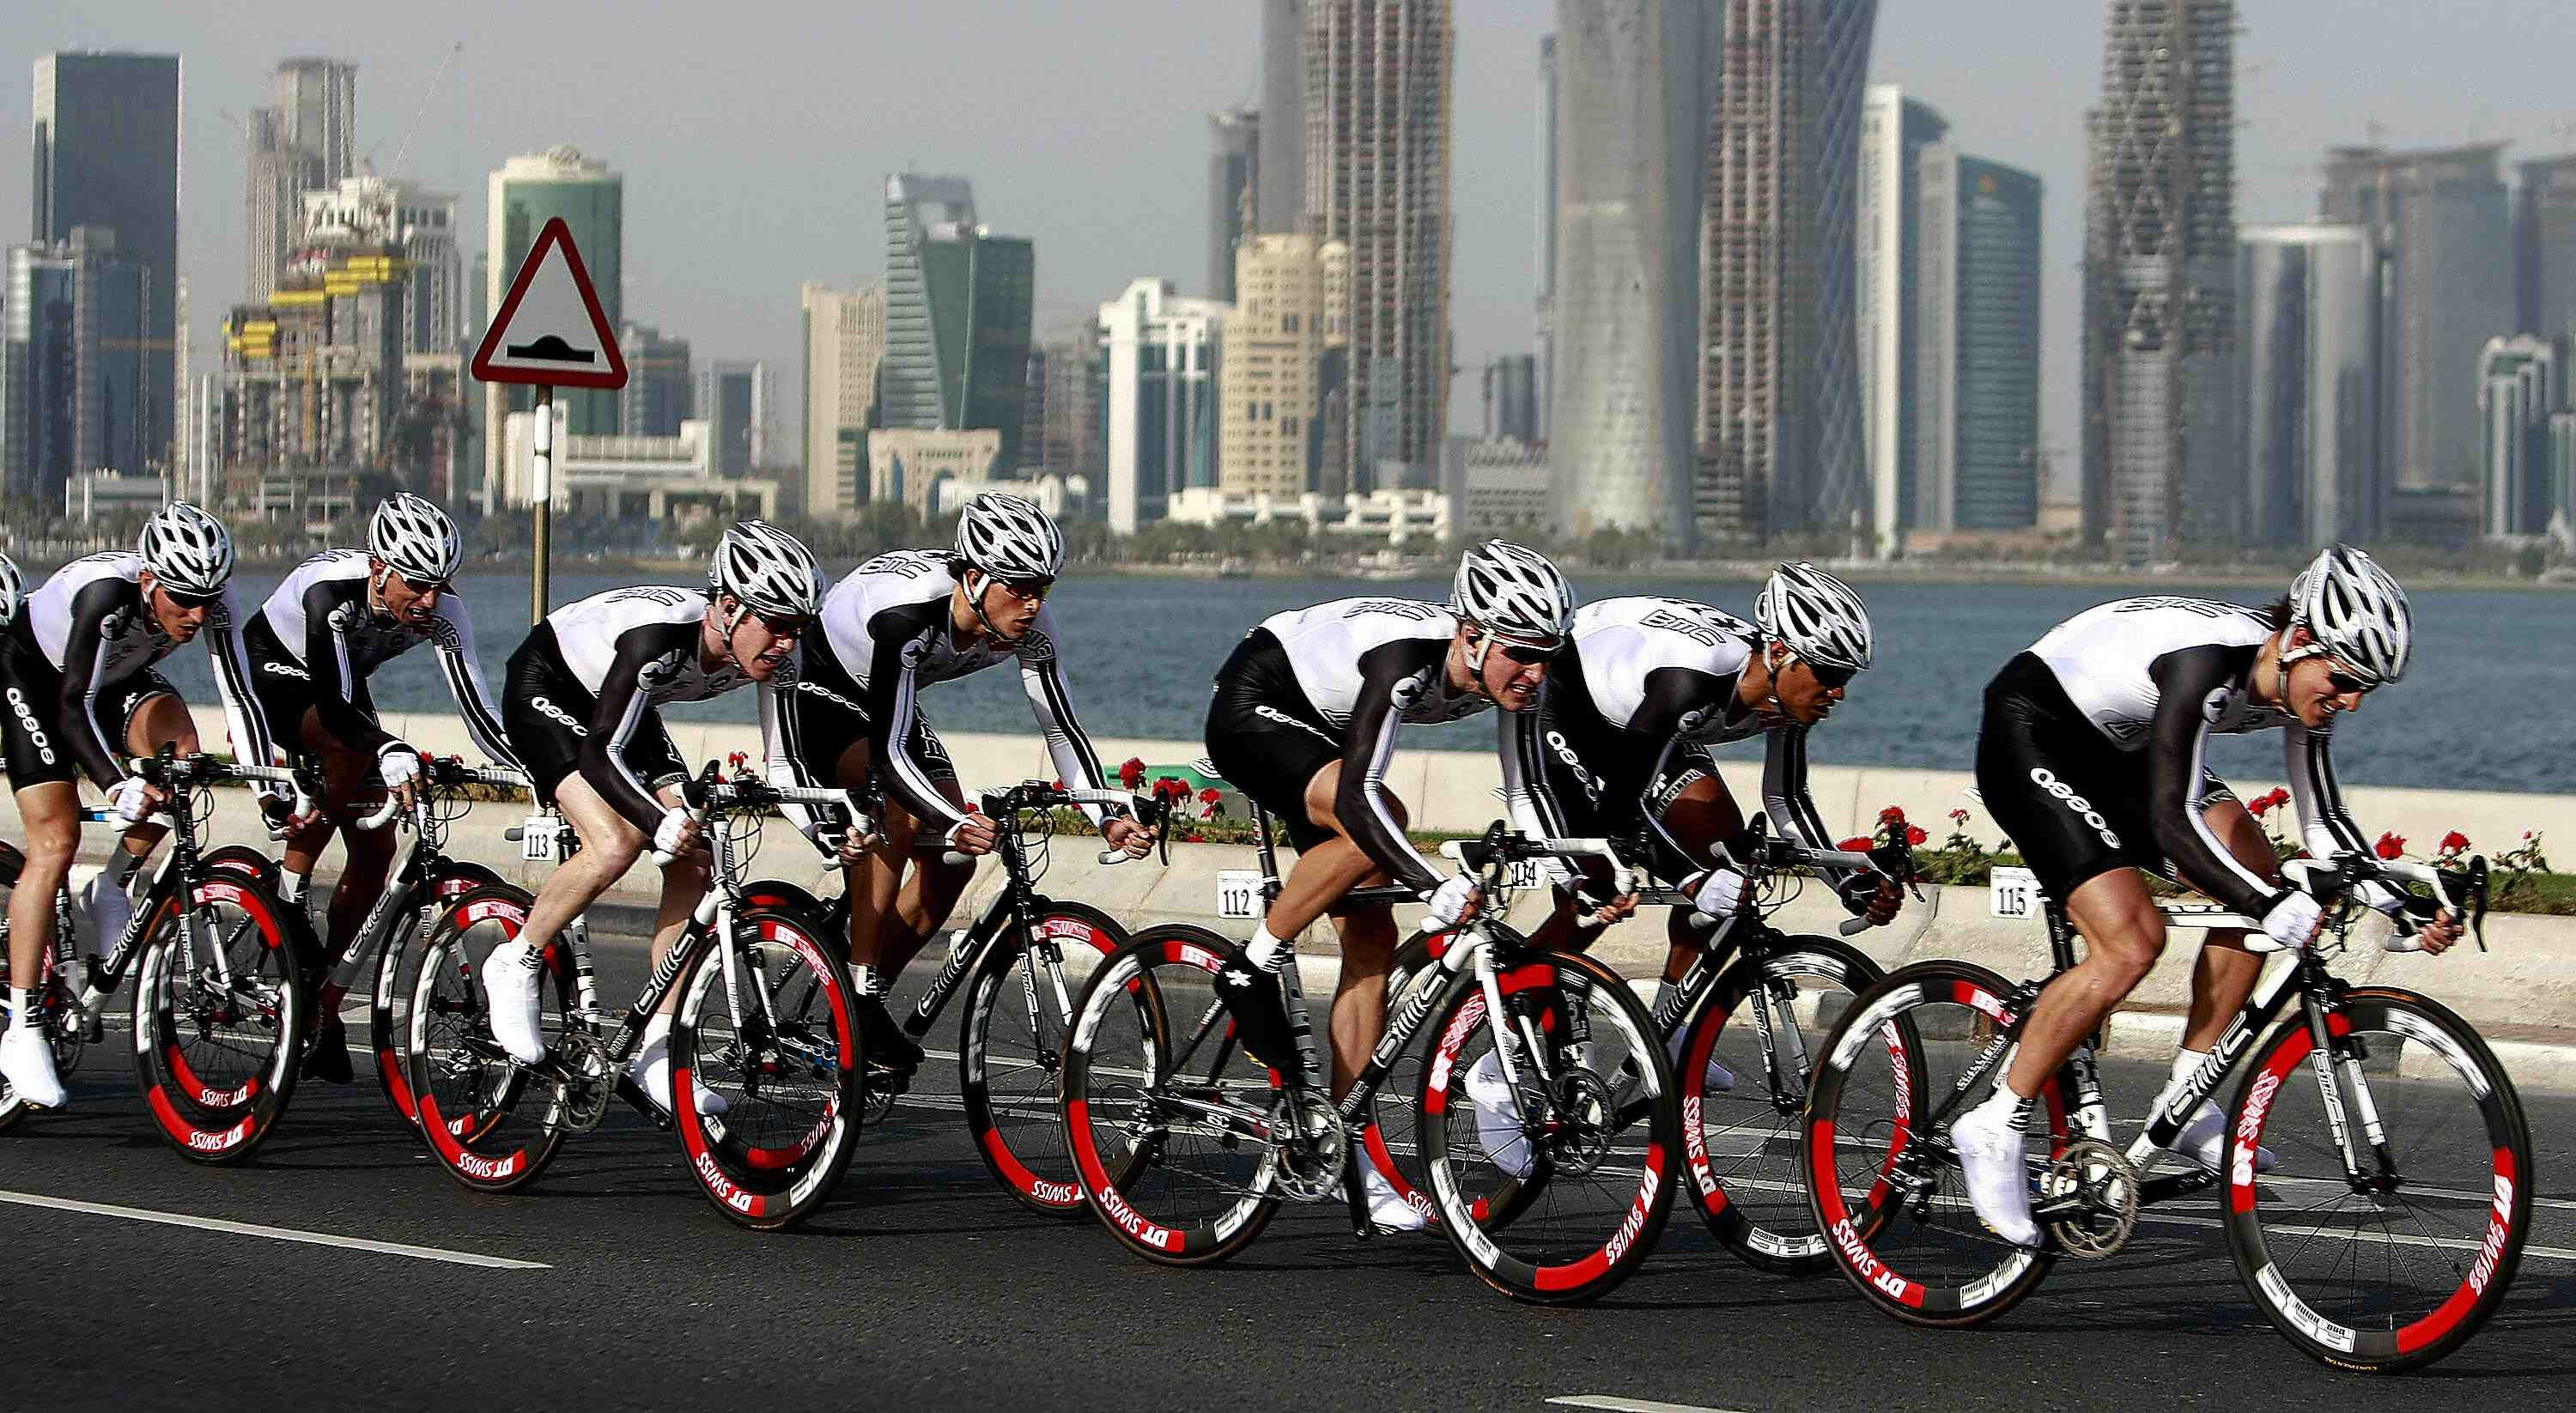 BMC Racing competes in the first stage of the 2009 Tour of Qatar cycling race, a six kilometers (3.7 miles) team time trial, in Doha on February 1, 2009.